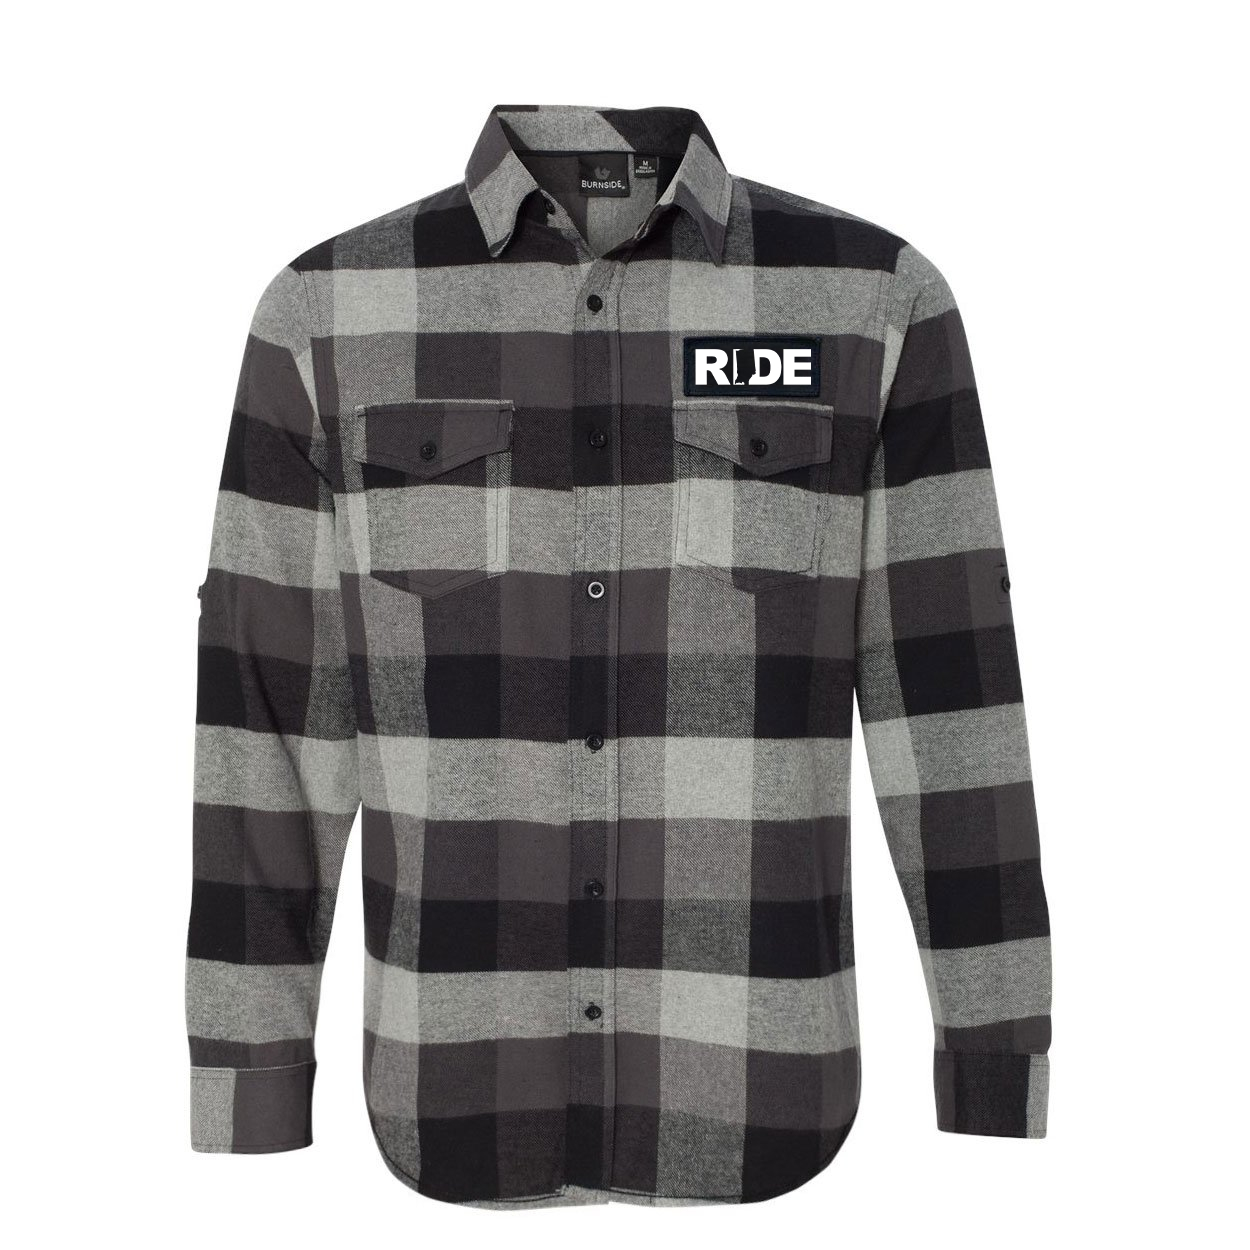 Ride Indiana Classic Unisex Long Sleeve Woven Patch Flannel Shirt Black/Gray (White Logo)